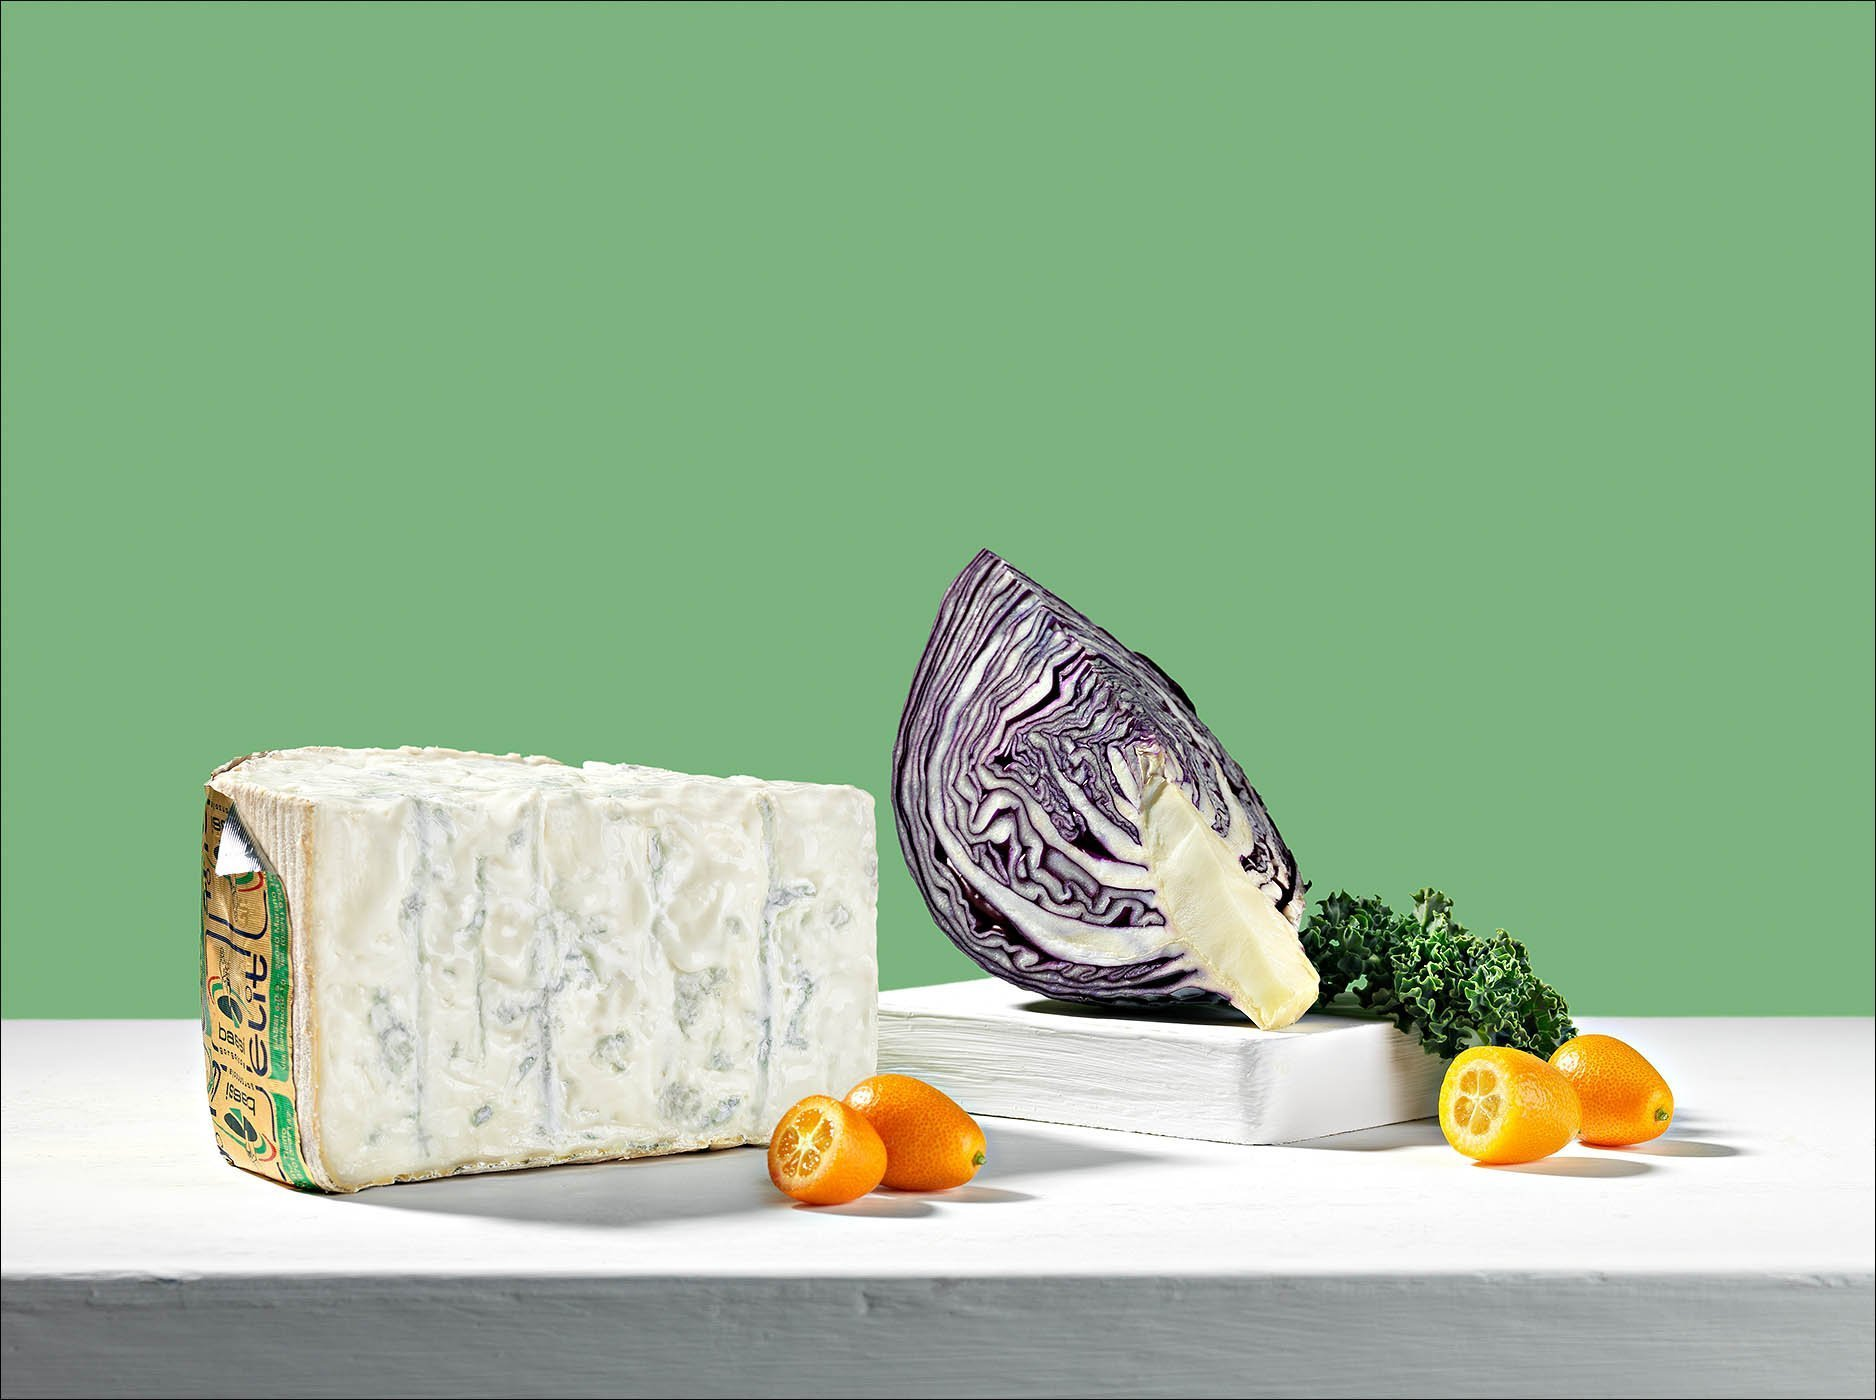 Andrea Sudati fotografo food gorgonzola | Andrea Sudati Photo Studio